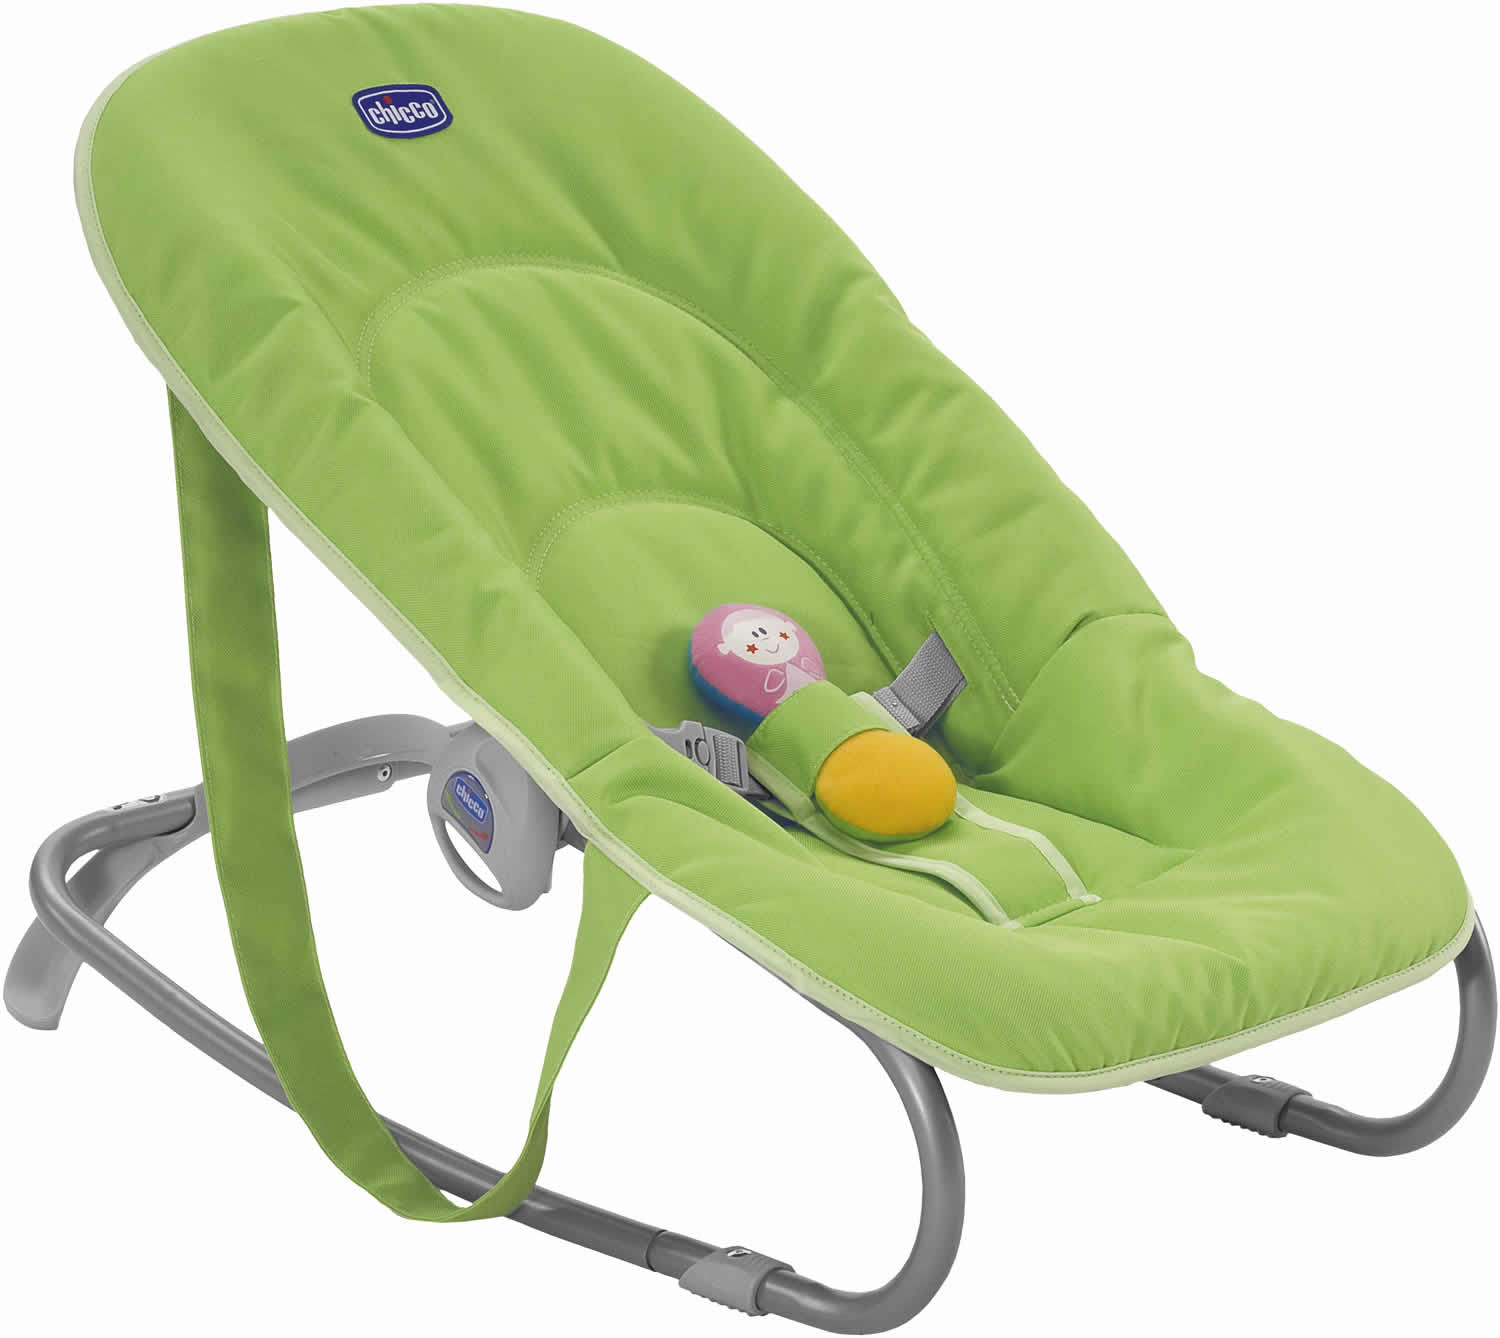 Kinder Wippe Chicco Easy Relax Babywippe Wippe Kinderwippe